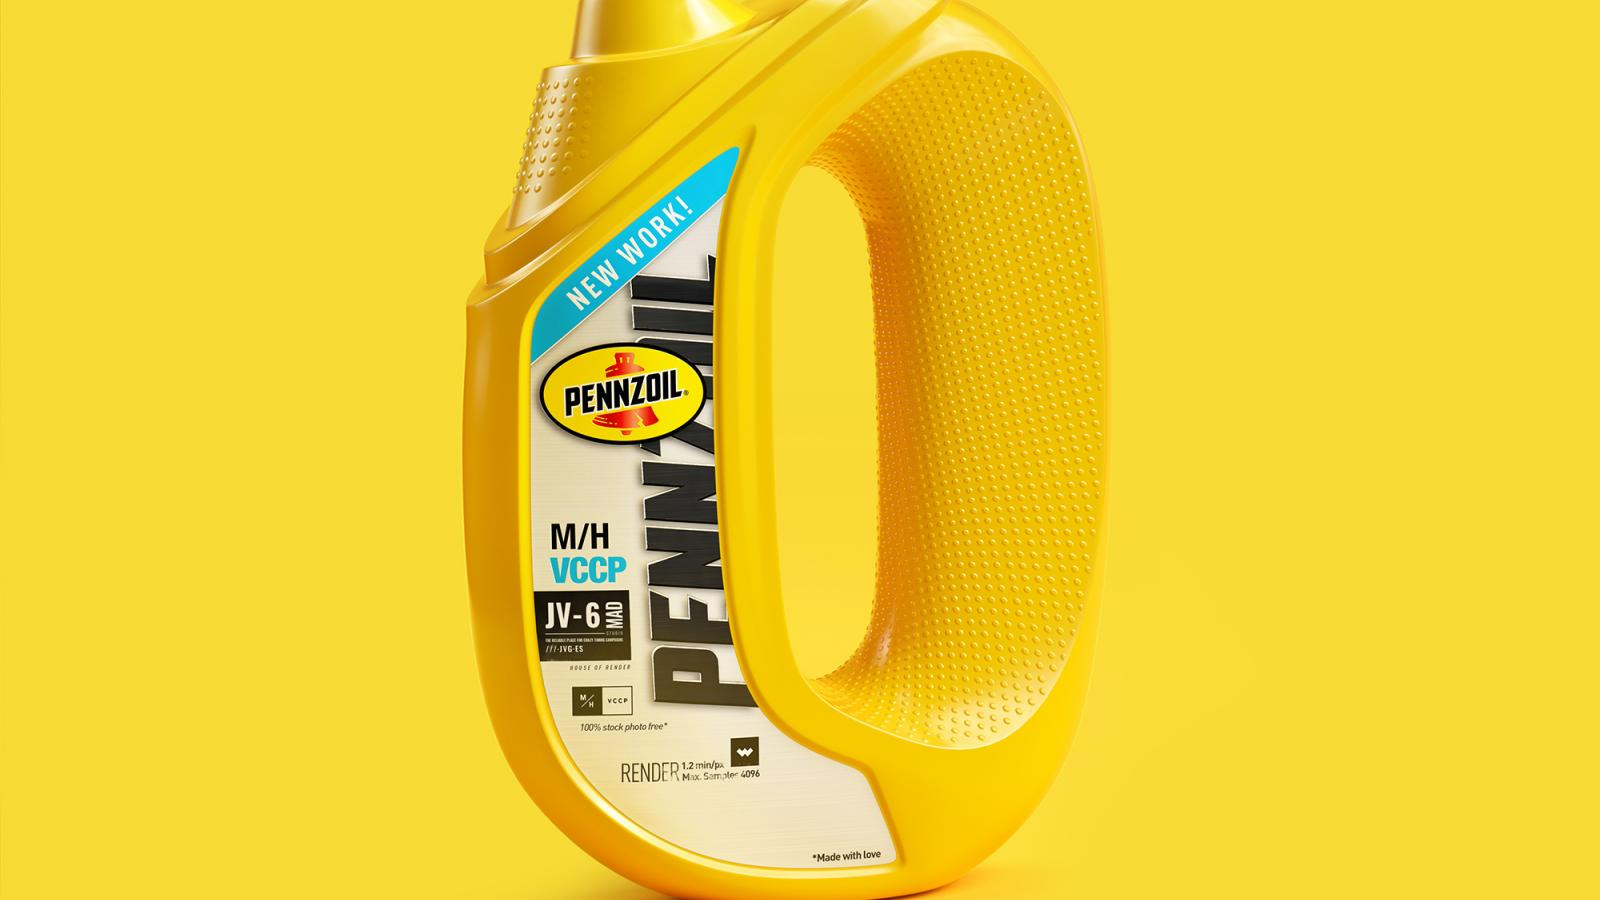 Digital Illustration and Typography for the Pennzoil by JVG ™